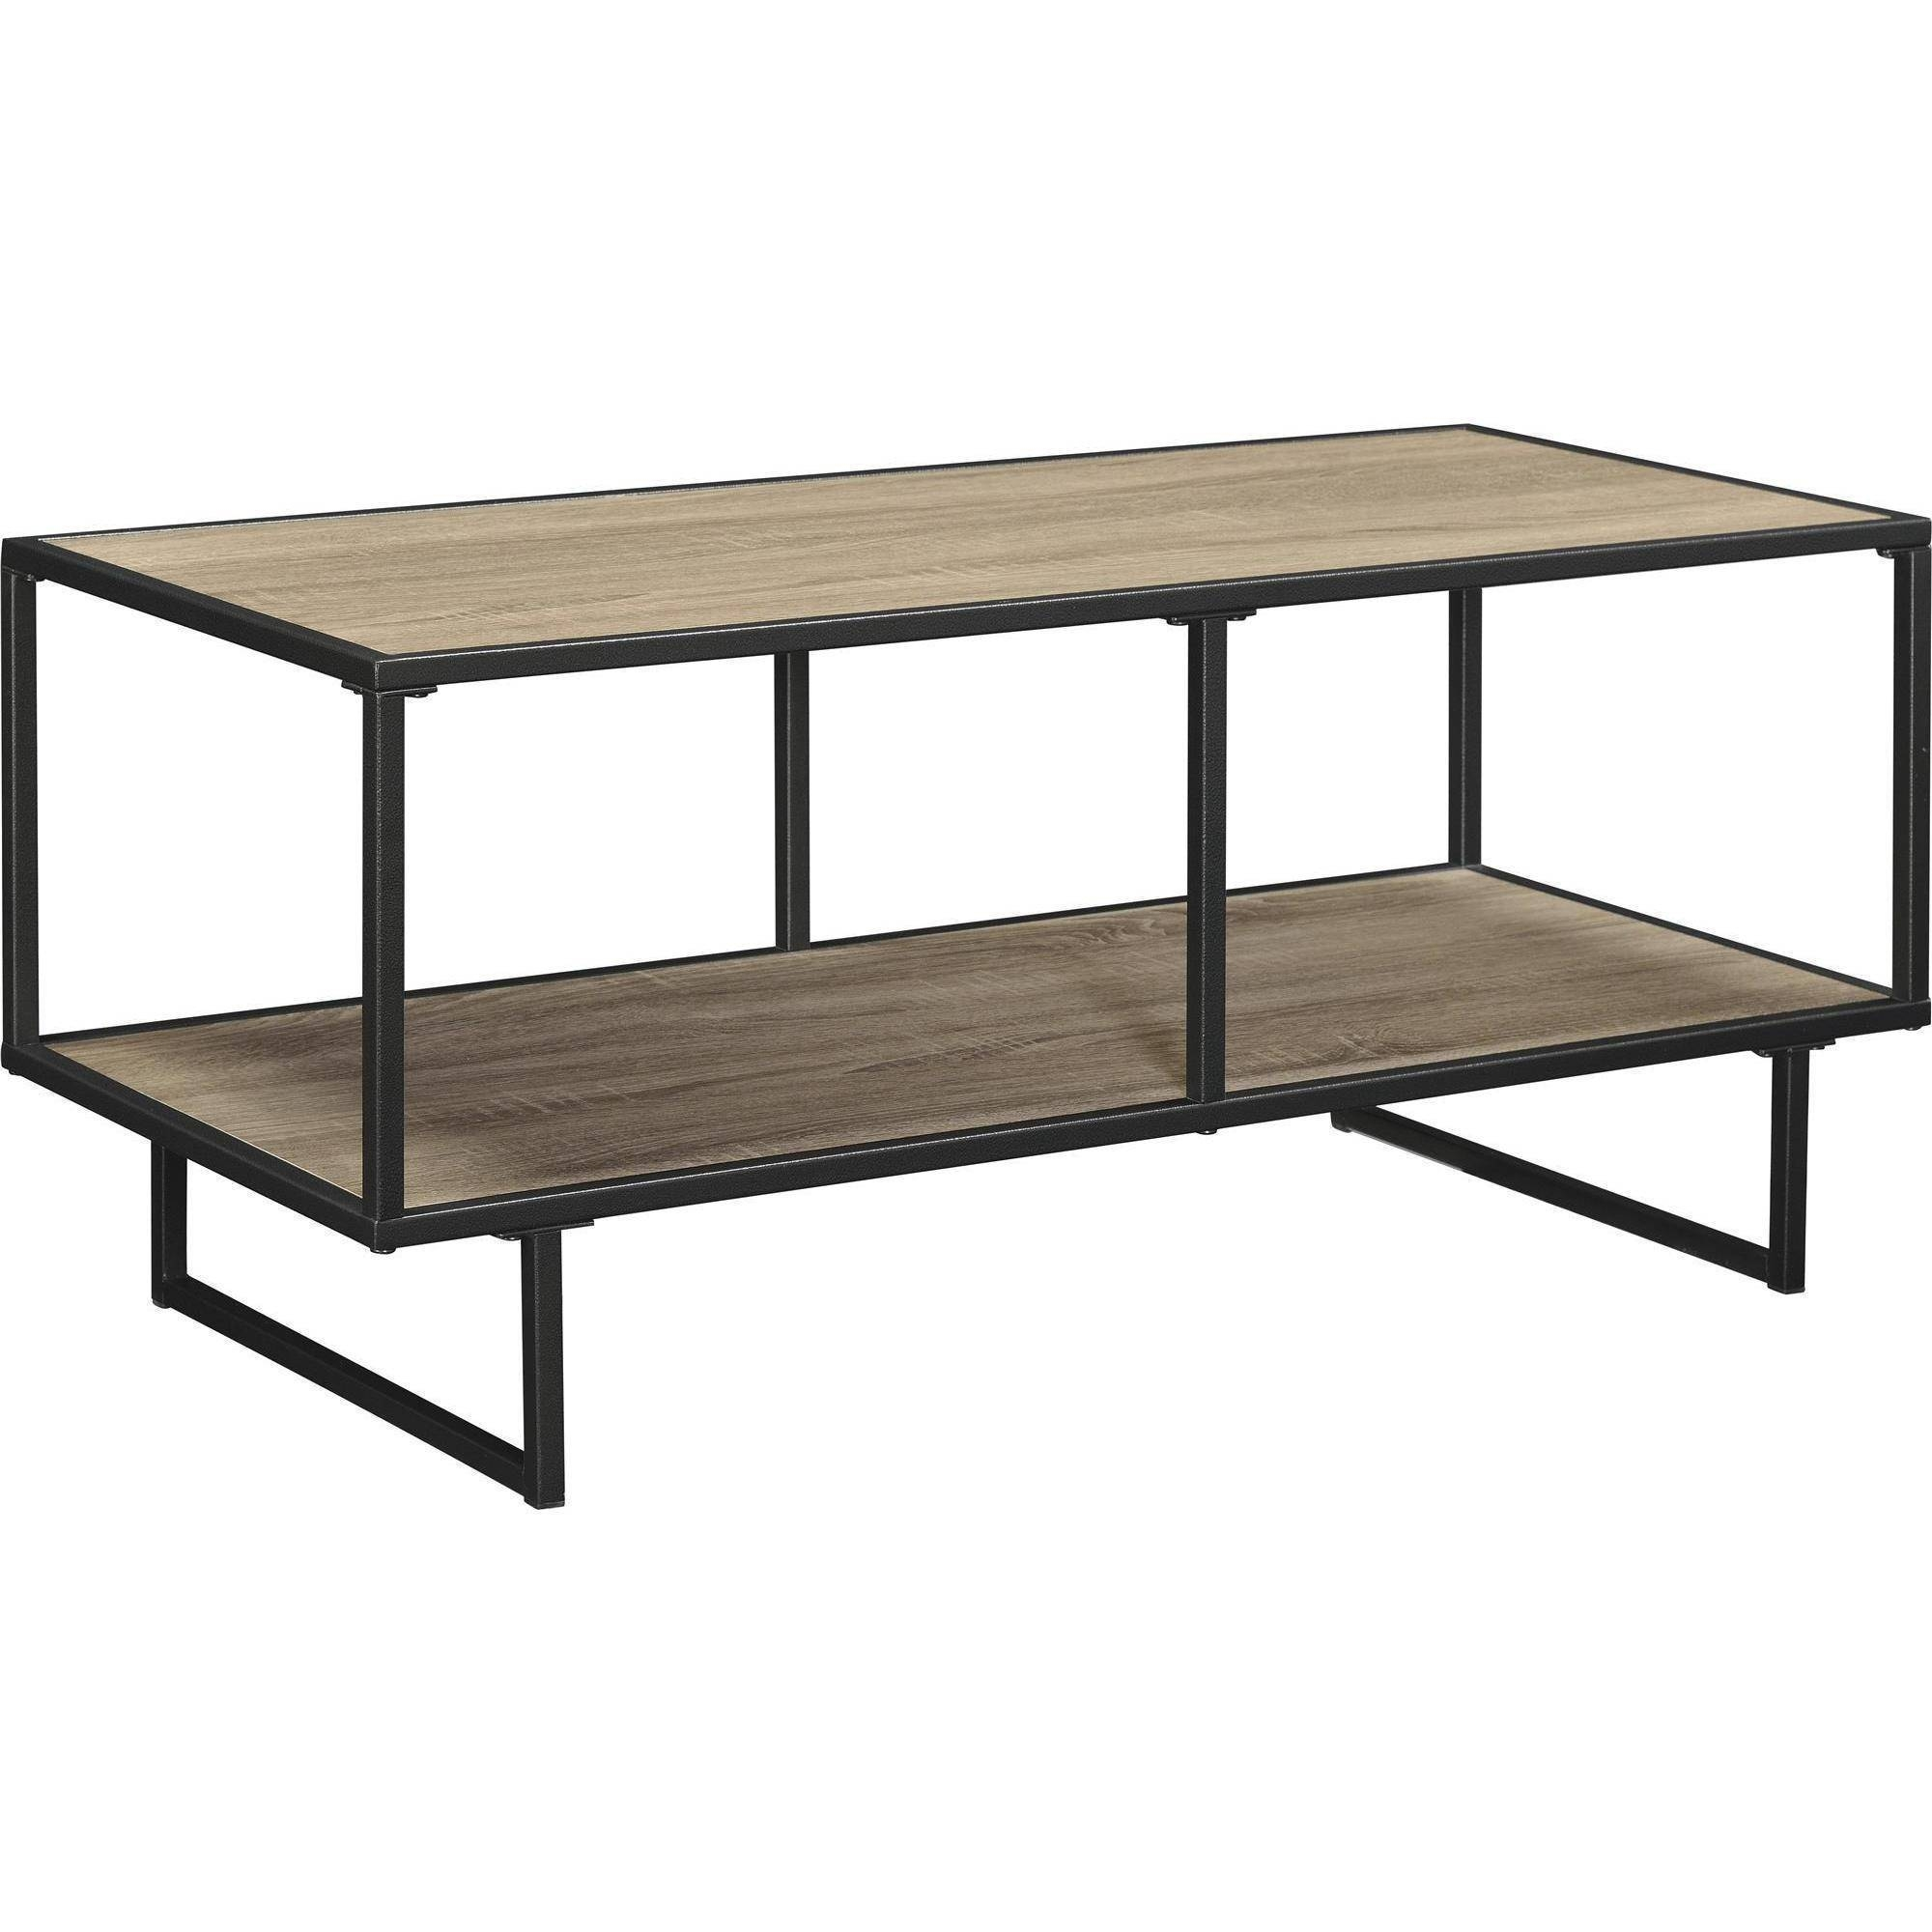 "Ameriwood Home Emmett Tv Stand/coffee Table For Tvs Up To 42"" Wide for Tv Cabinet And Coffee Table Sets (Image 1 of 30)"